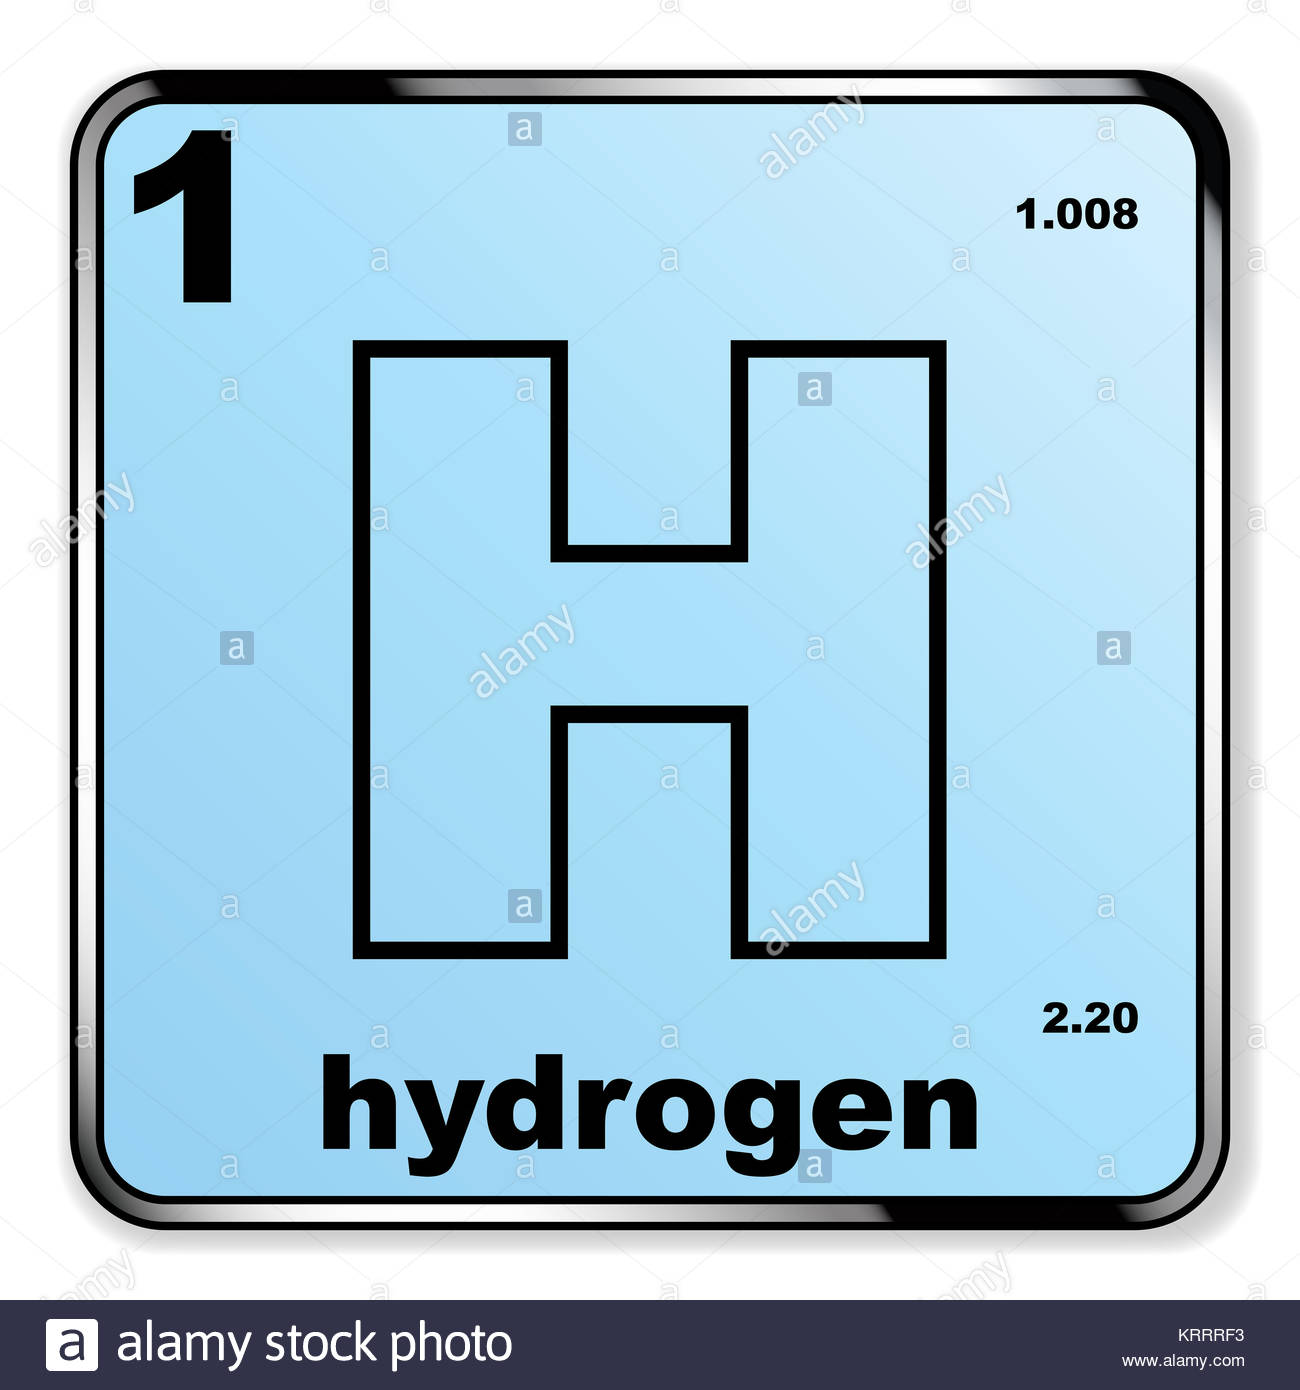 Hydrogen chemical element stock photos hydrogen chemical element stock images alamy - Hydrogen on the periodic table ...